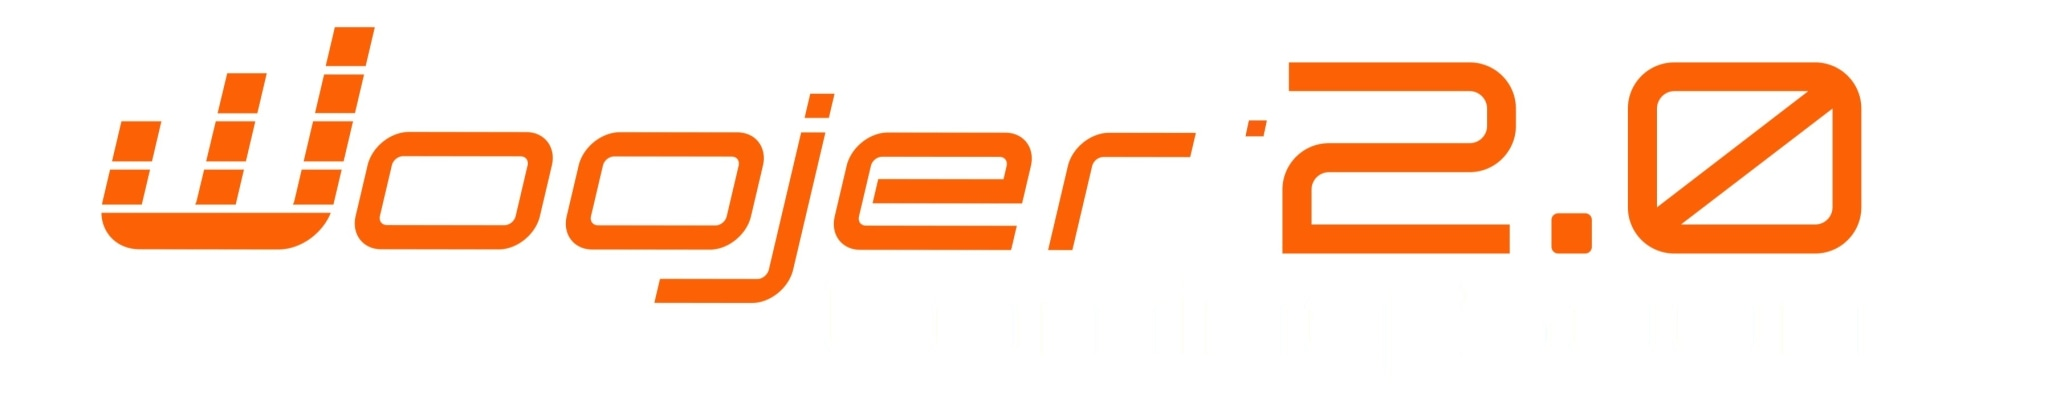 Woojer promo codes